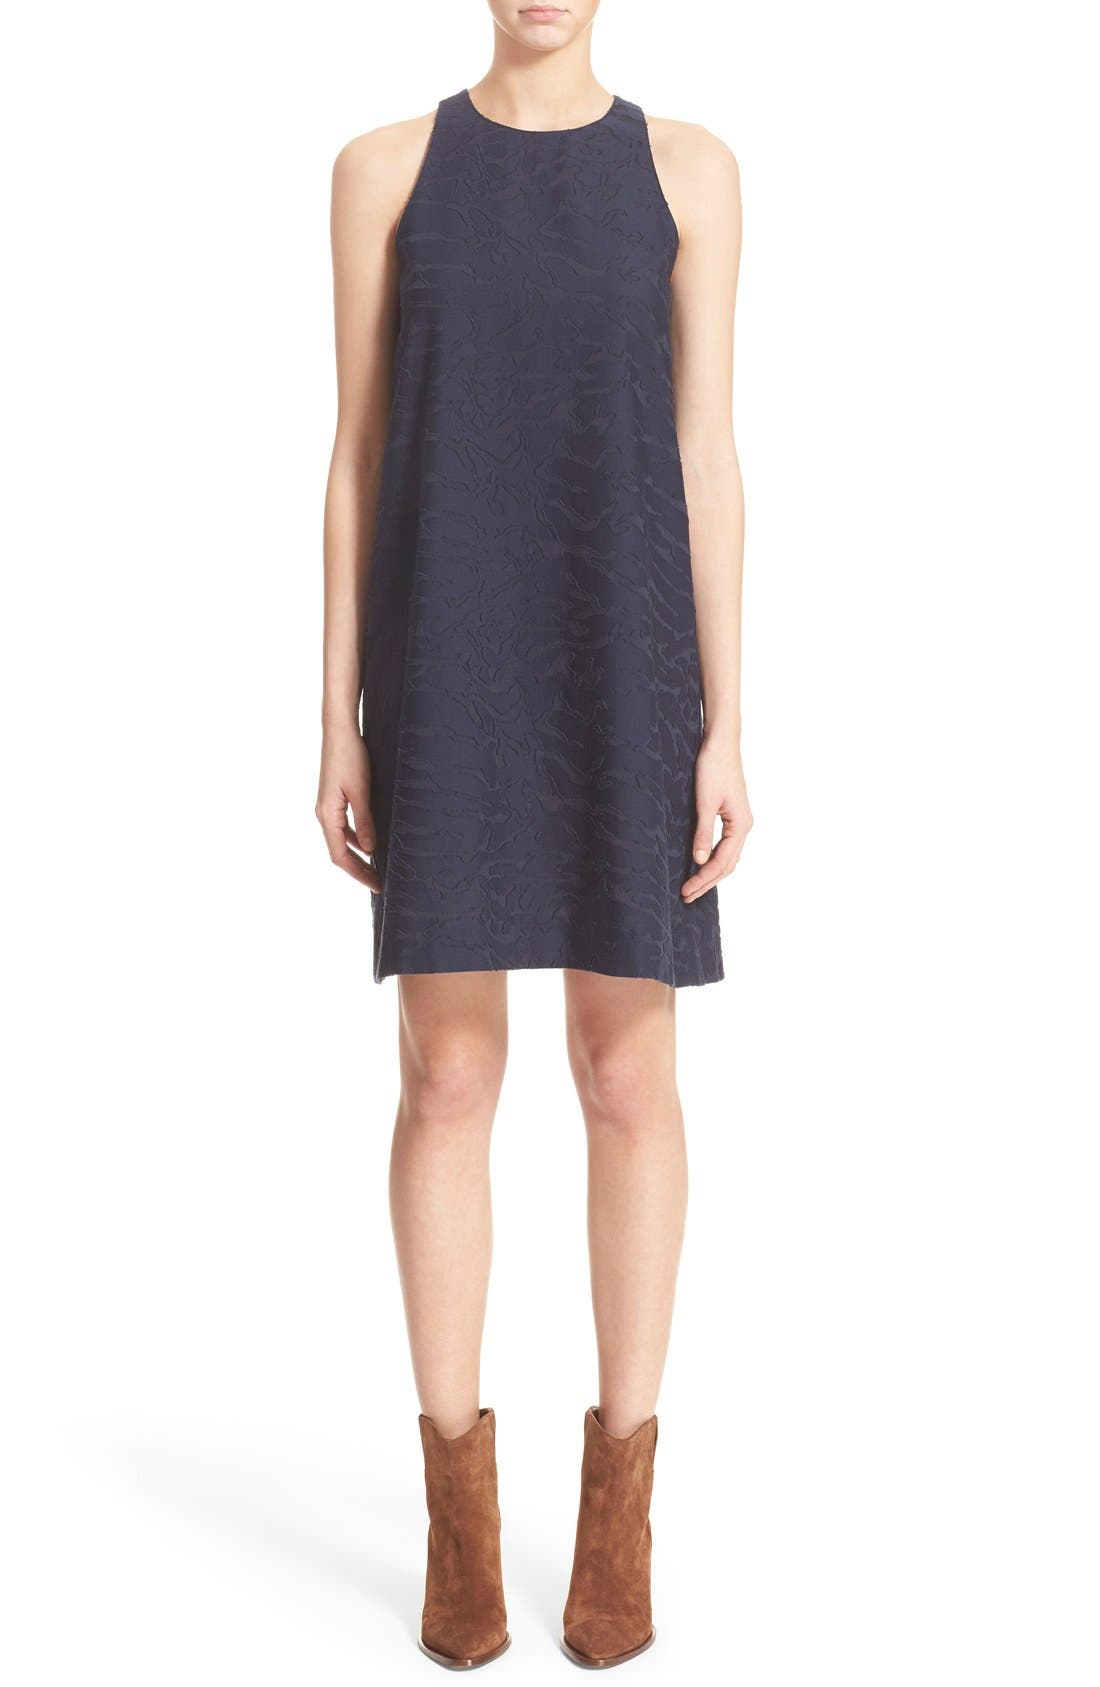 Alternate Image 1 Selected - Vince Fil Coupé Sleeveless Shift Dress (Nordstrom Exclusive)